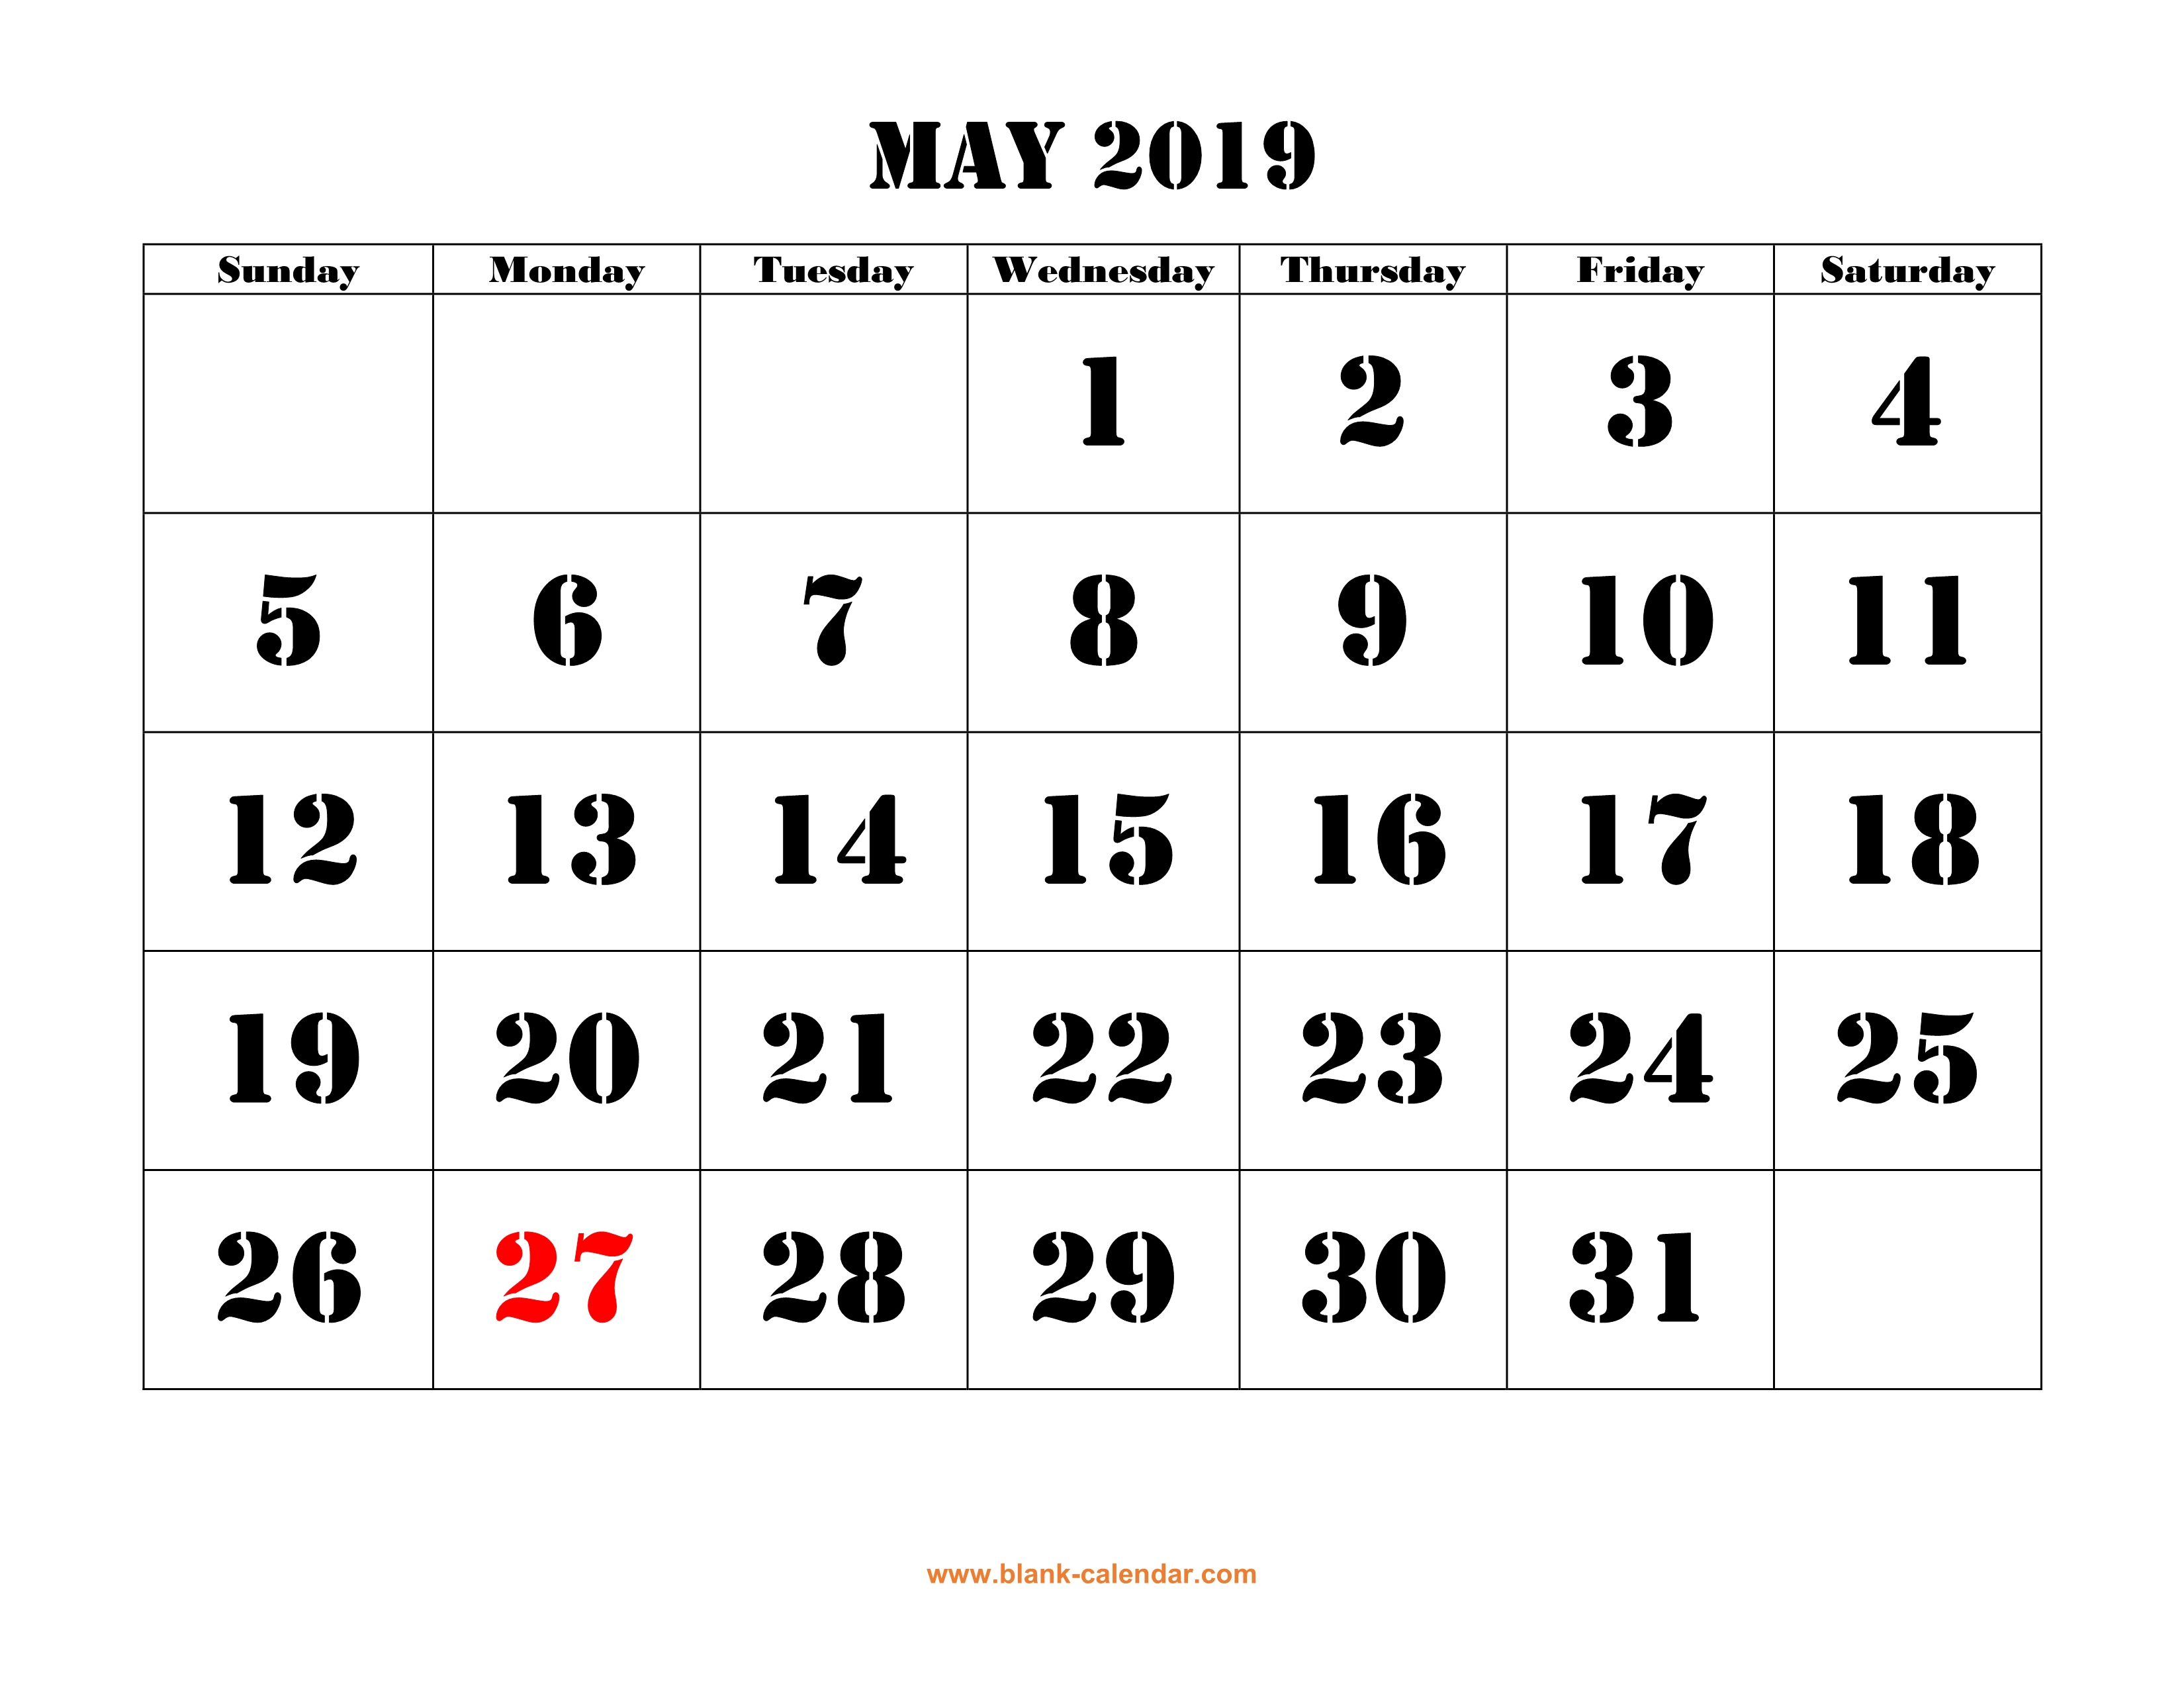 May 2019 Printable Calendar | Free Download Monthly Calendar Templates within Blank Calendar With Open Squares